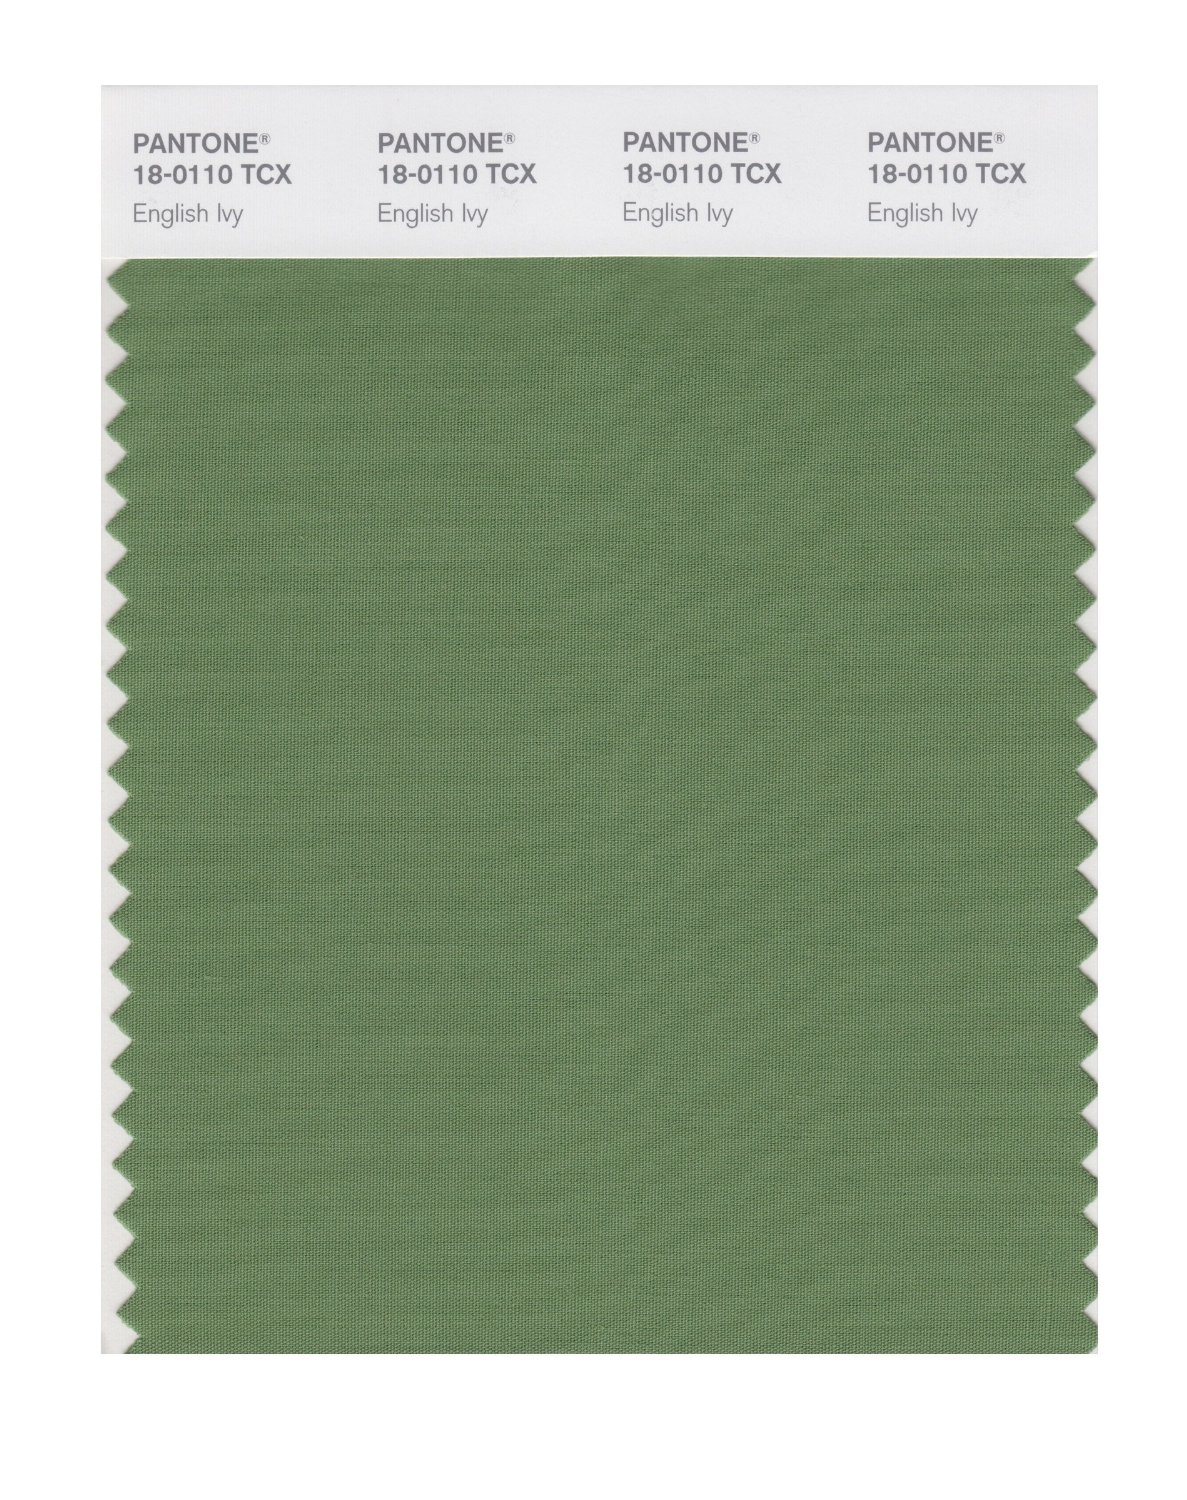 Pantone Smart Swatch 18-0110 English Ivy